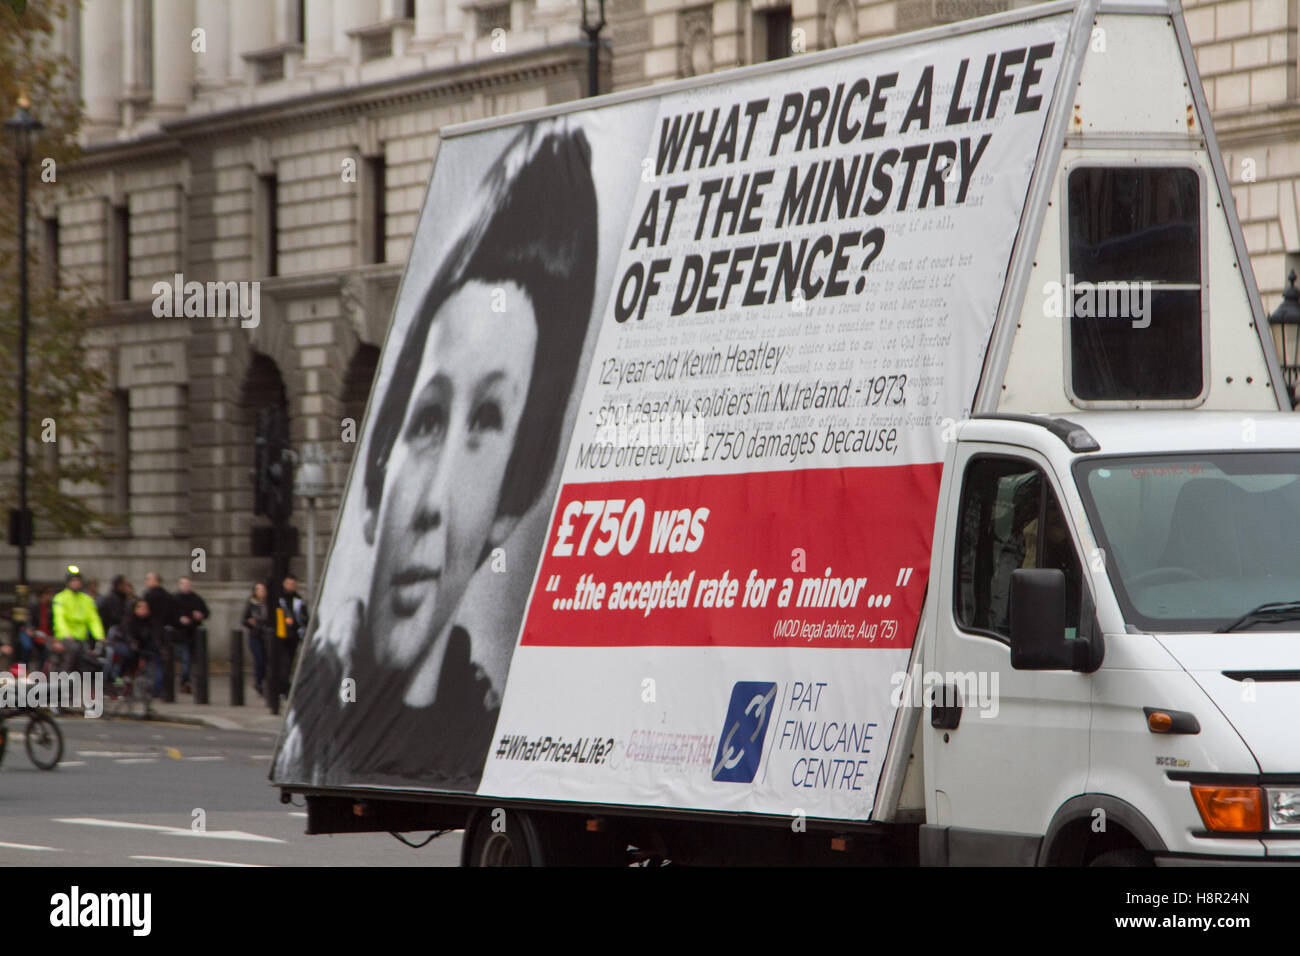 London, UK. 15th Nov, 2016. An ad campaign run by Pat Finucane centre, set up following the Irish human rights lawyer Stock Photo